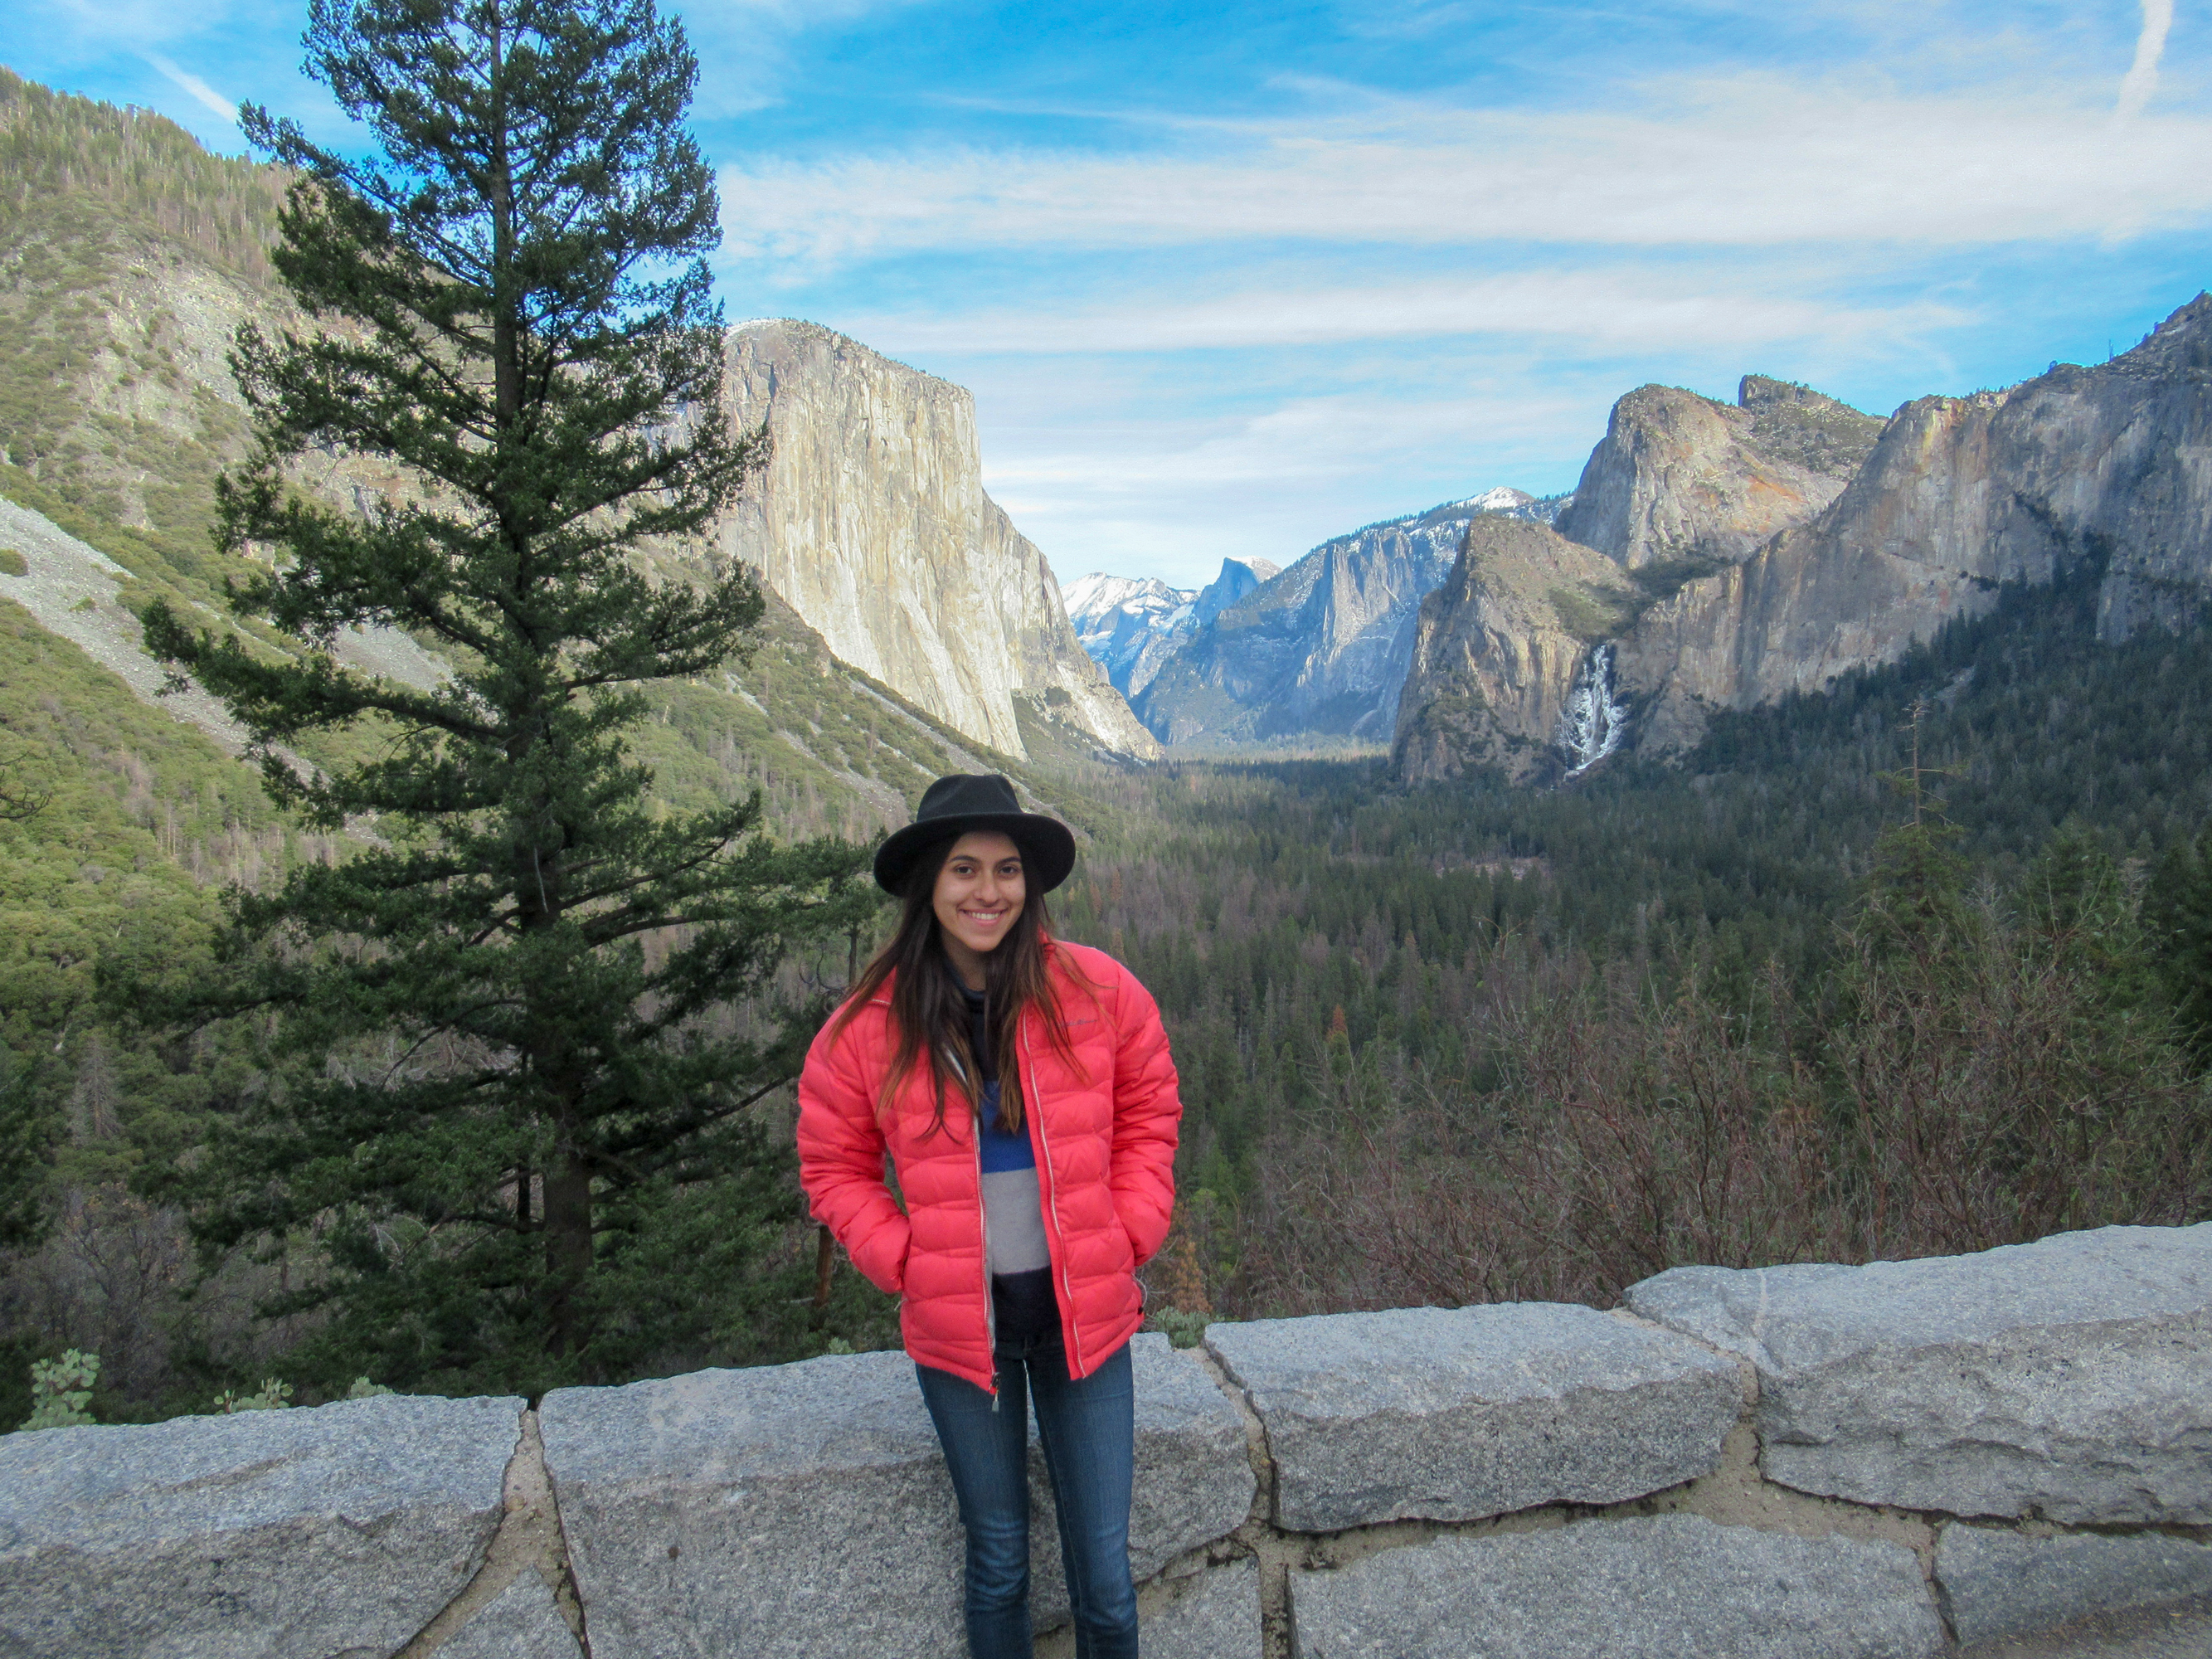 Madison Snively sits on a ledge at an overlook of Yosemite Valley.